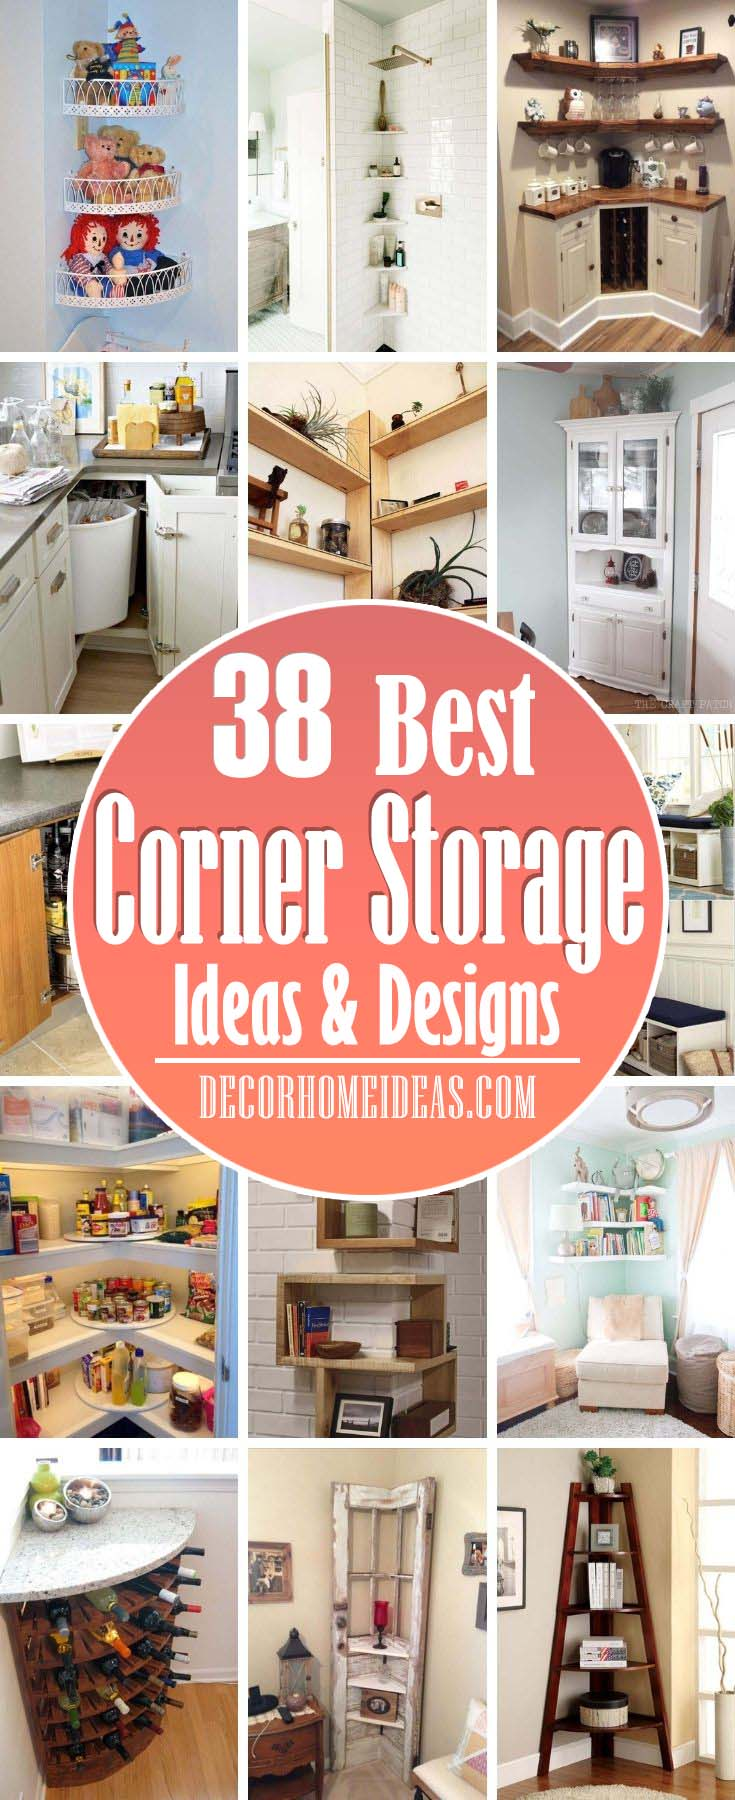 Best Space Saving Corner Storage Ideas. If your kitchen is small, it's essential to utilize every nook and cranny, including every corner. Rather than spending loads of money on professionally built cabinets, check out these DIY solutions to make the corners of your kitchen more functional. #decorhomeideas